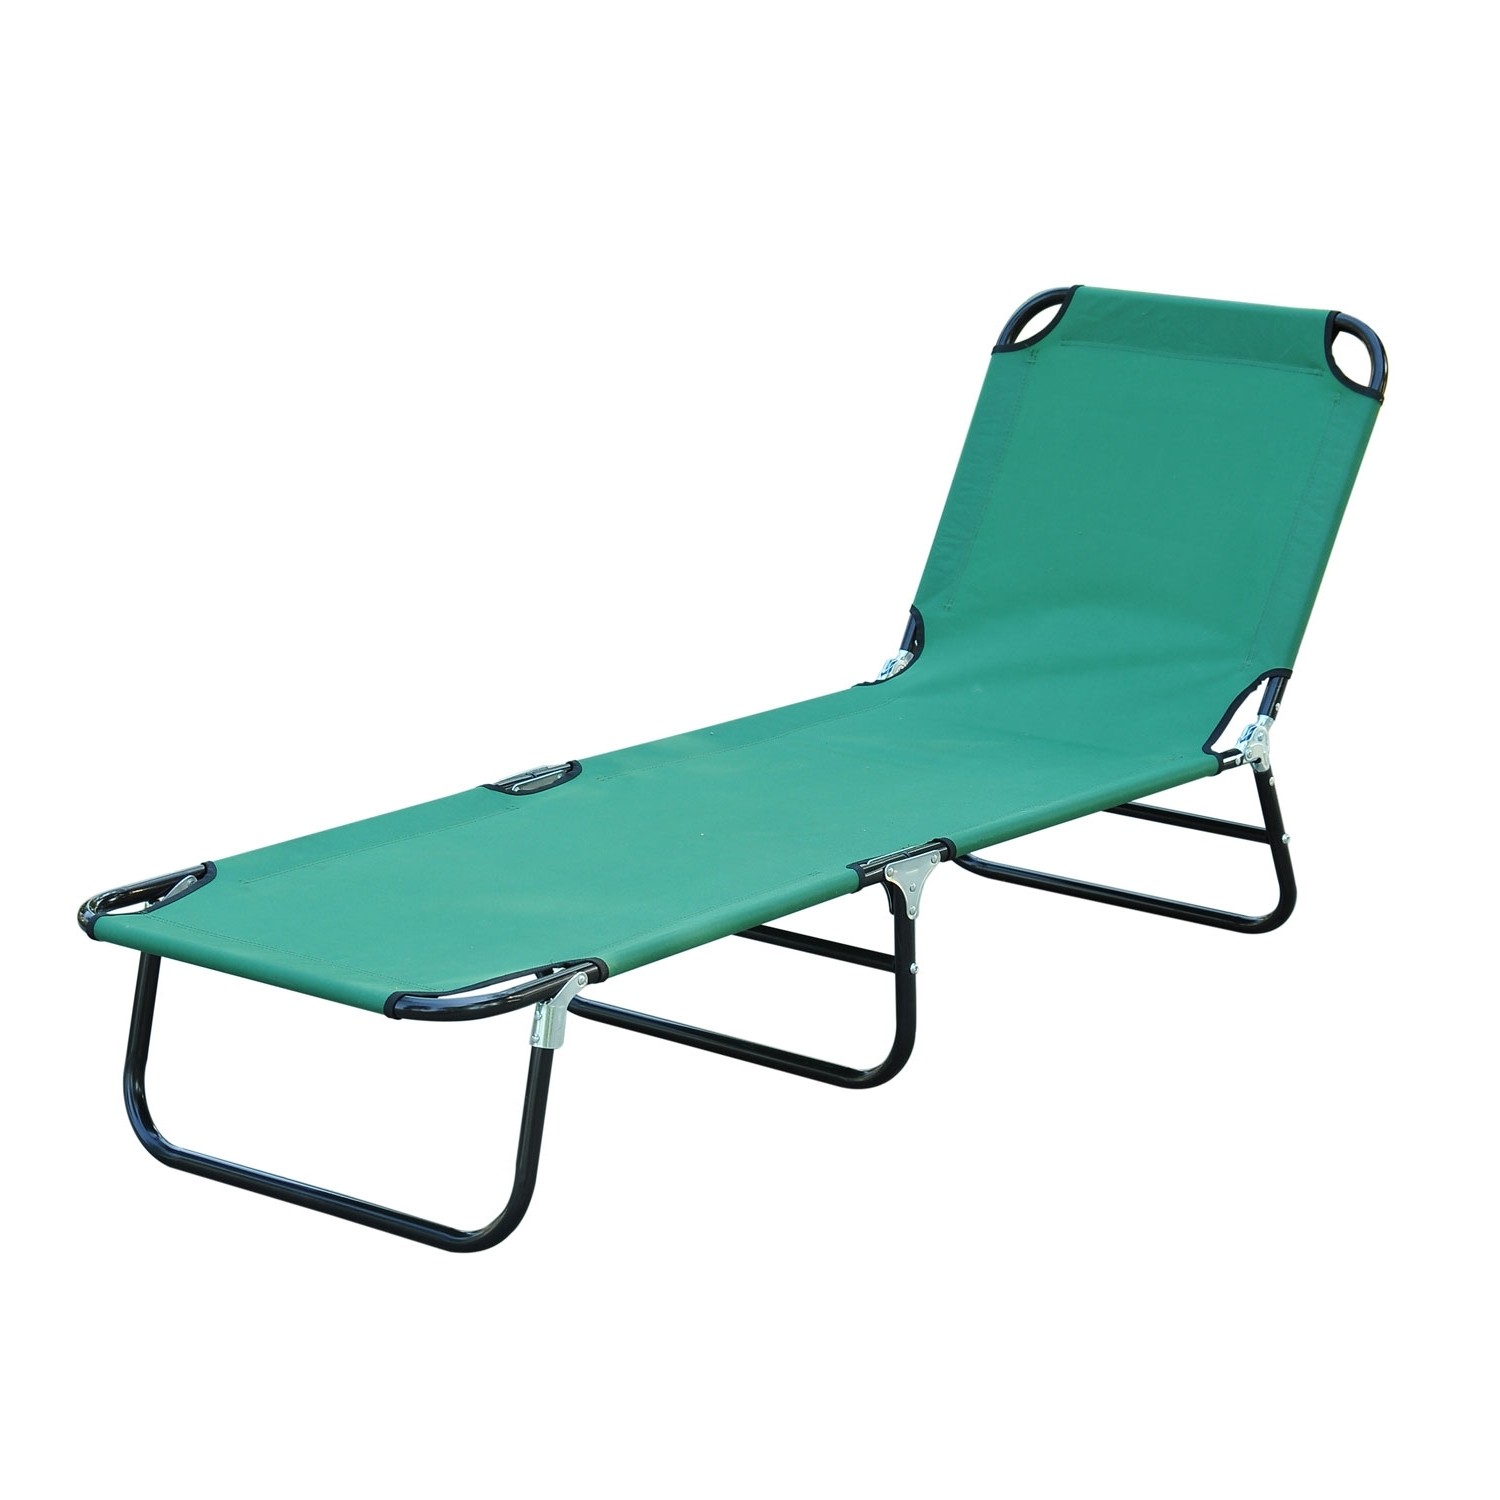 Chaise Lounge Chairs With Face Hole With Regard To Popular Beach Lounge Chair With Face Hole • Lounge Chairs Ideas (View 7 of 15)